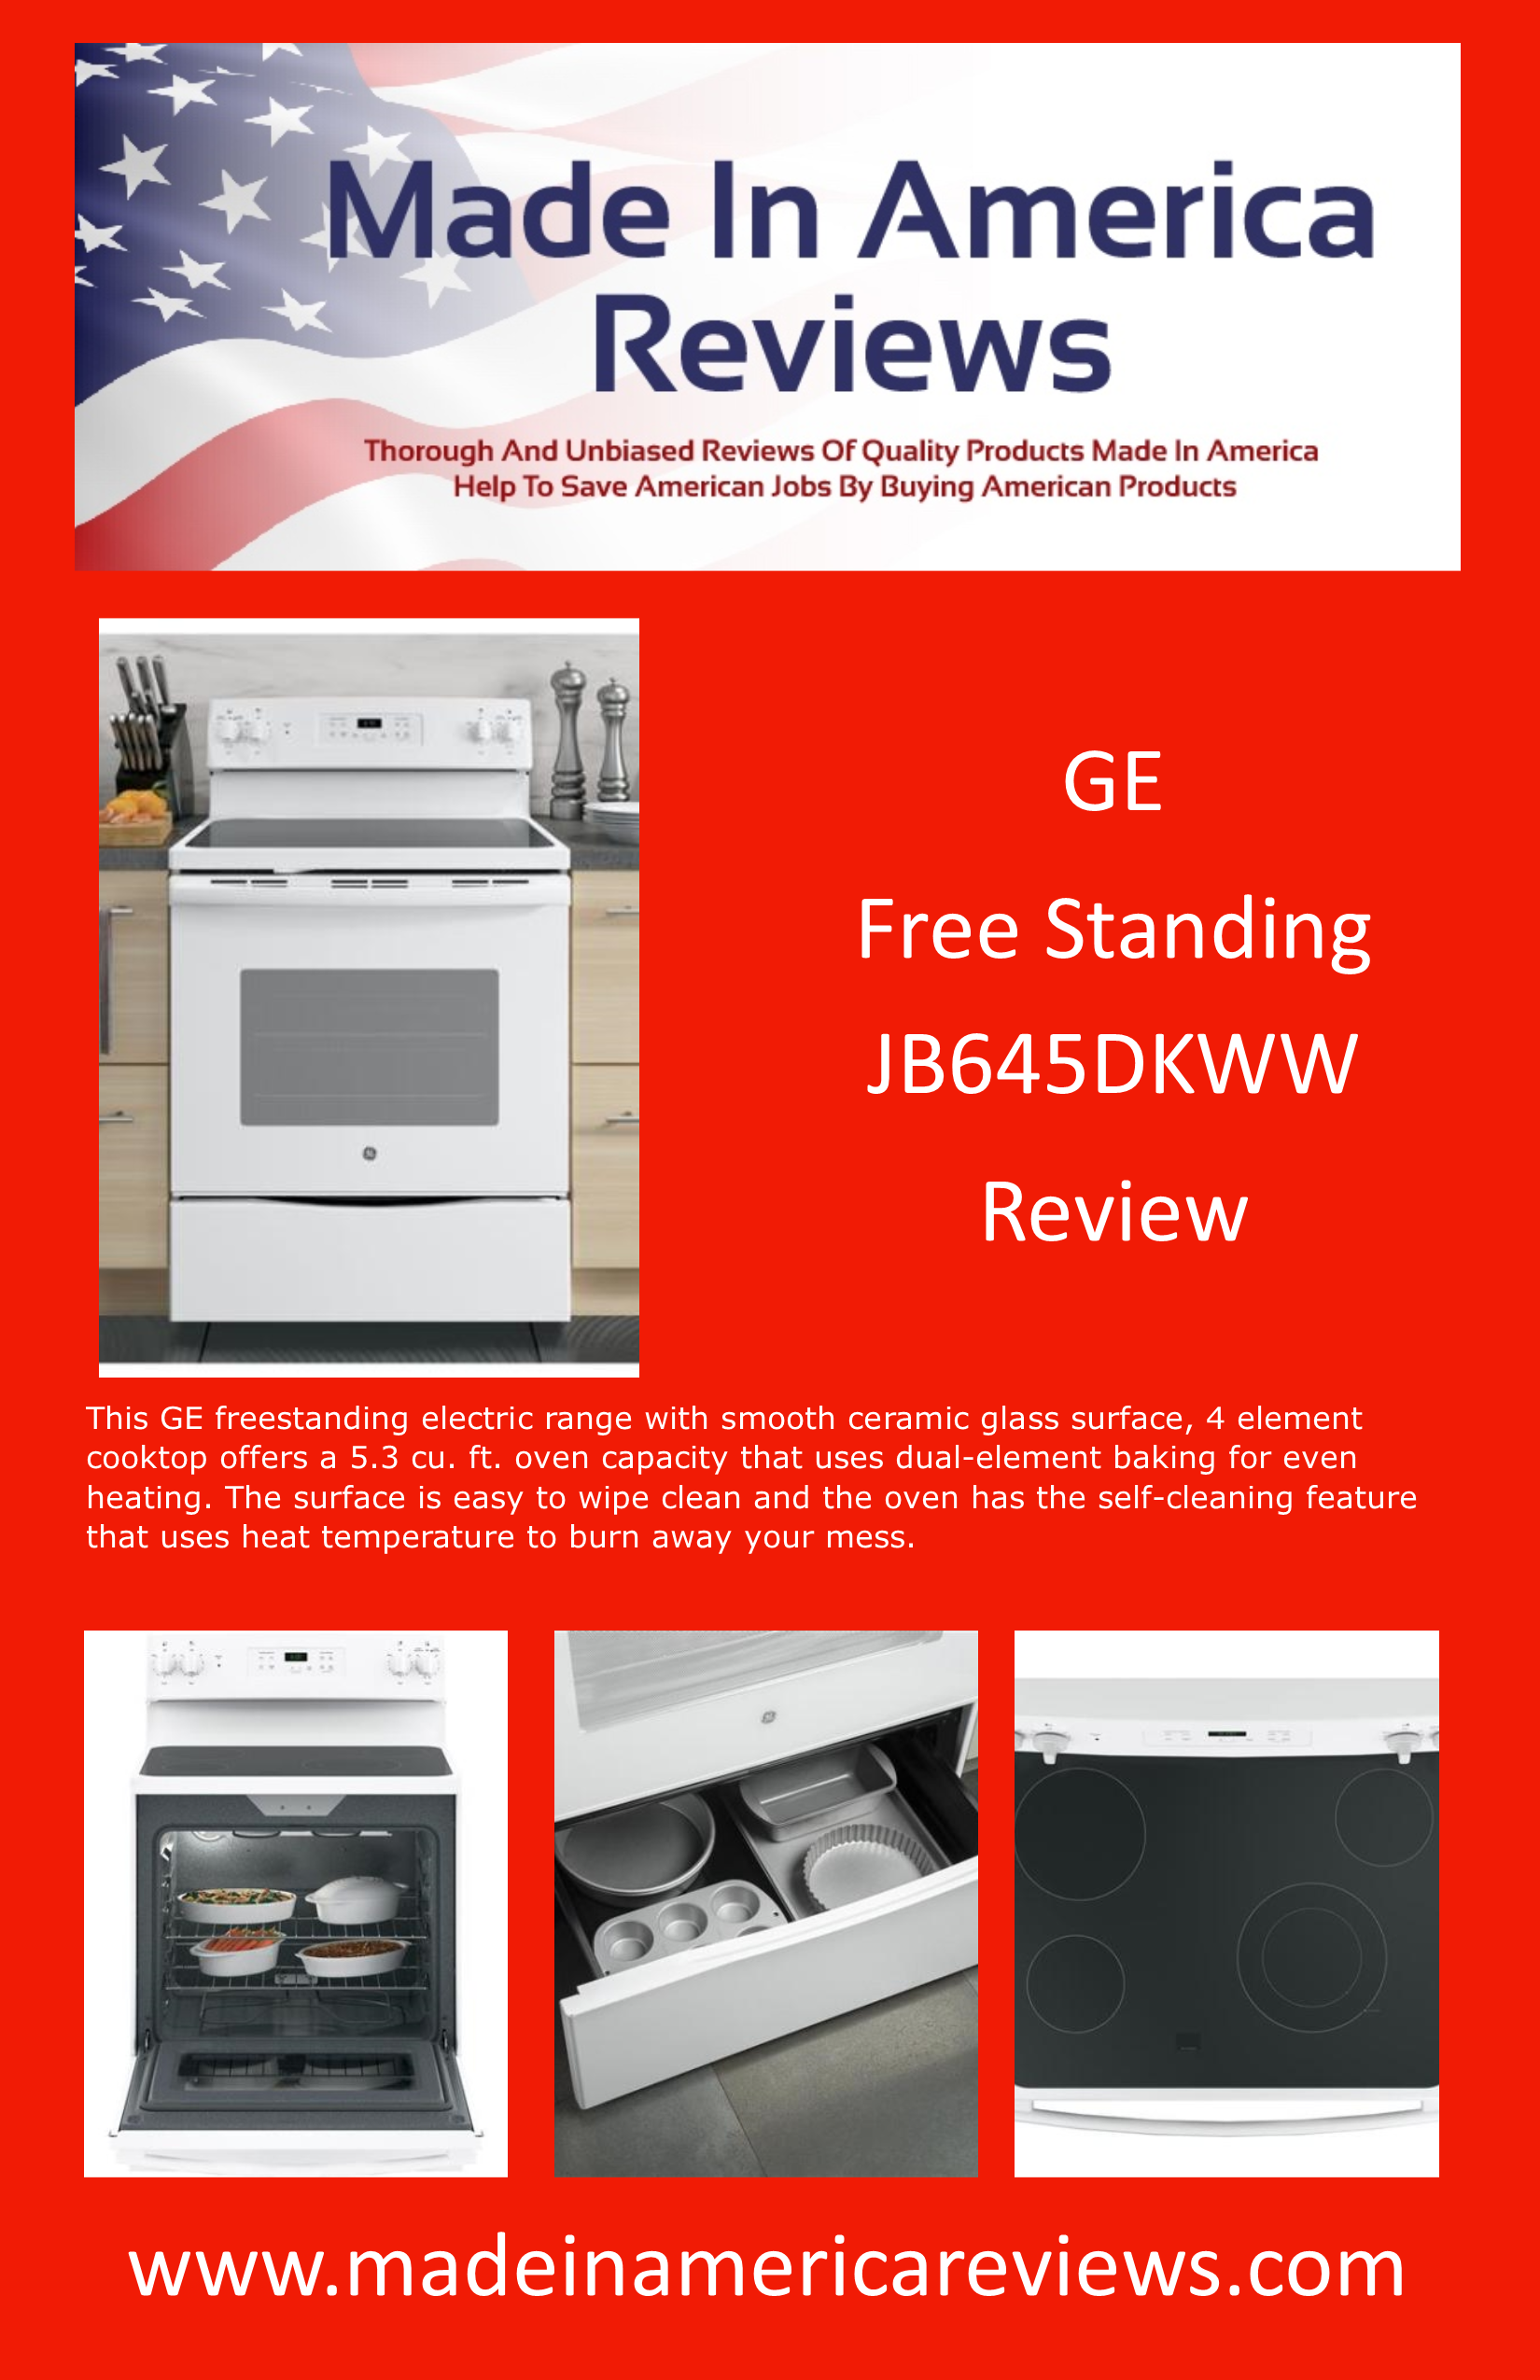 We Provide A Thorough And Honest Review Of The Made In America Ge Free Standing Jb645dkww Range With Photos Specifications User Reviews